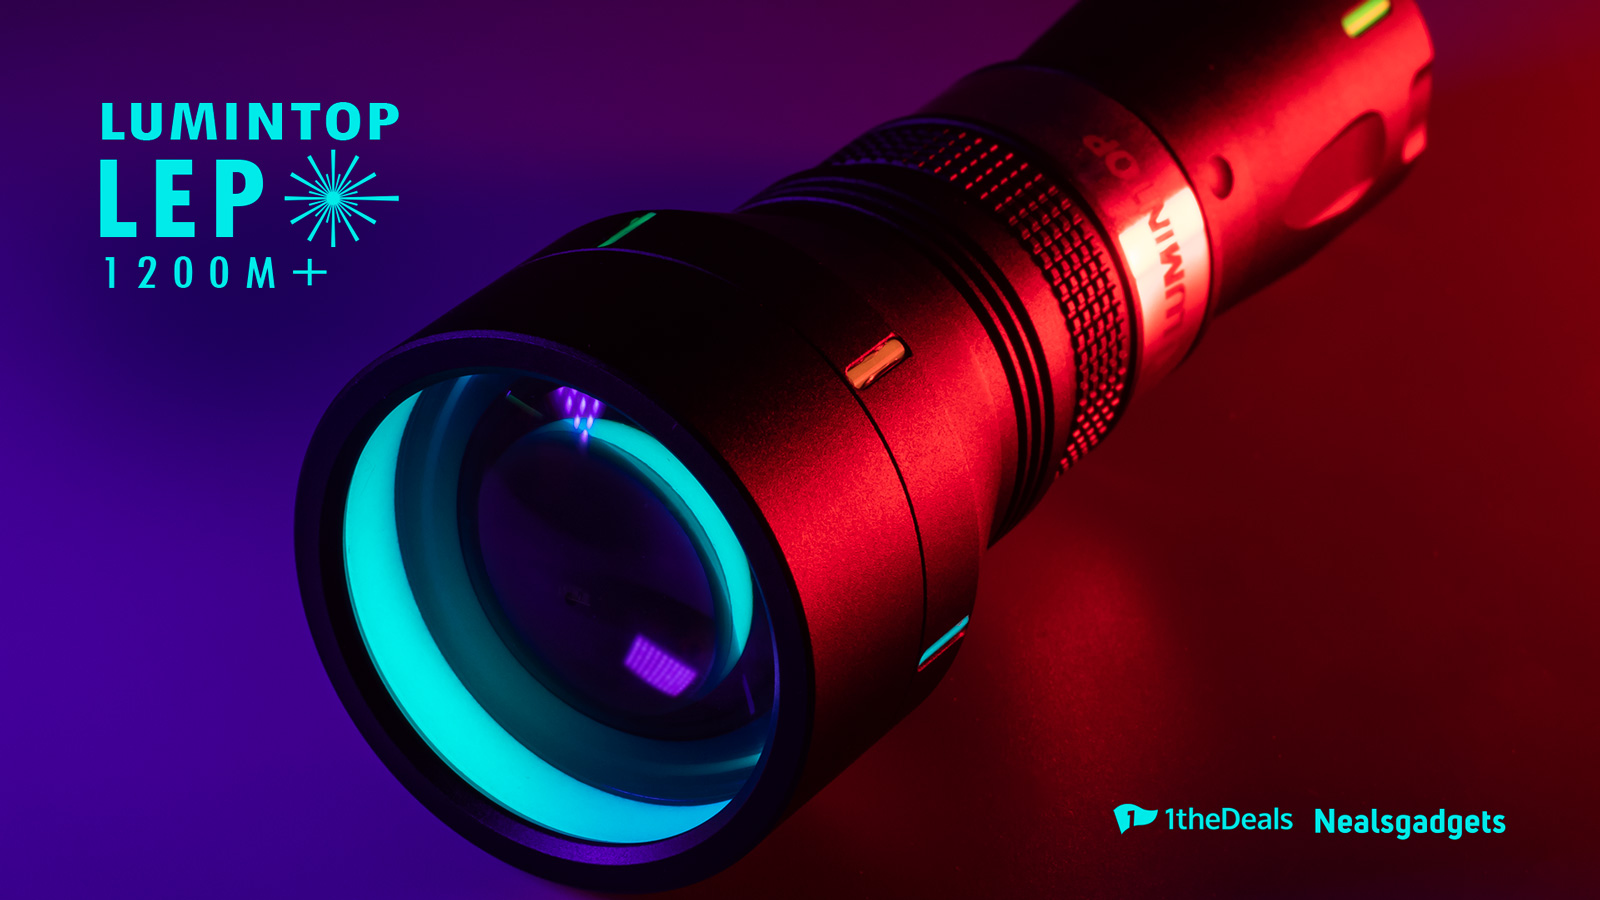 1thedeals LUMINTOP LEP